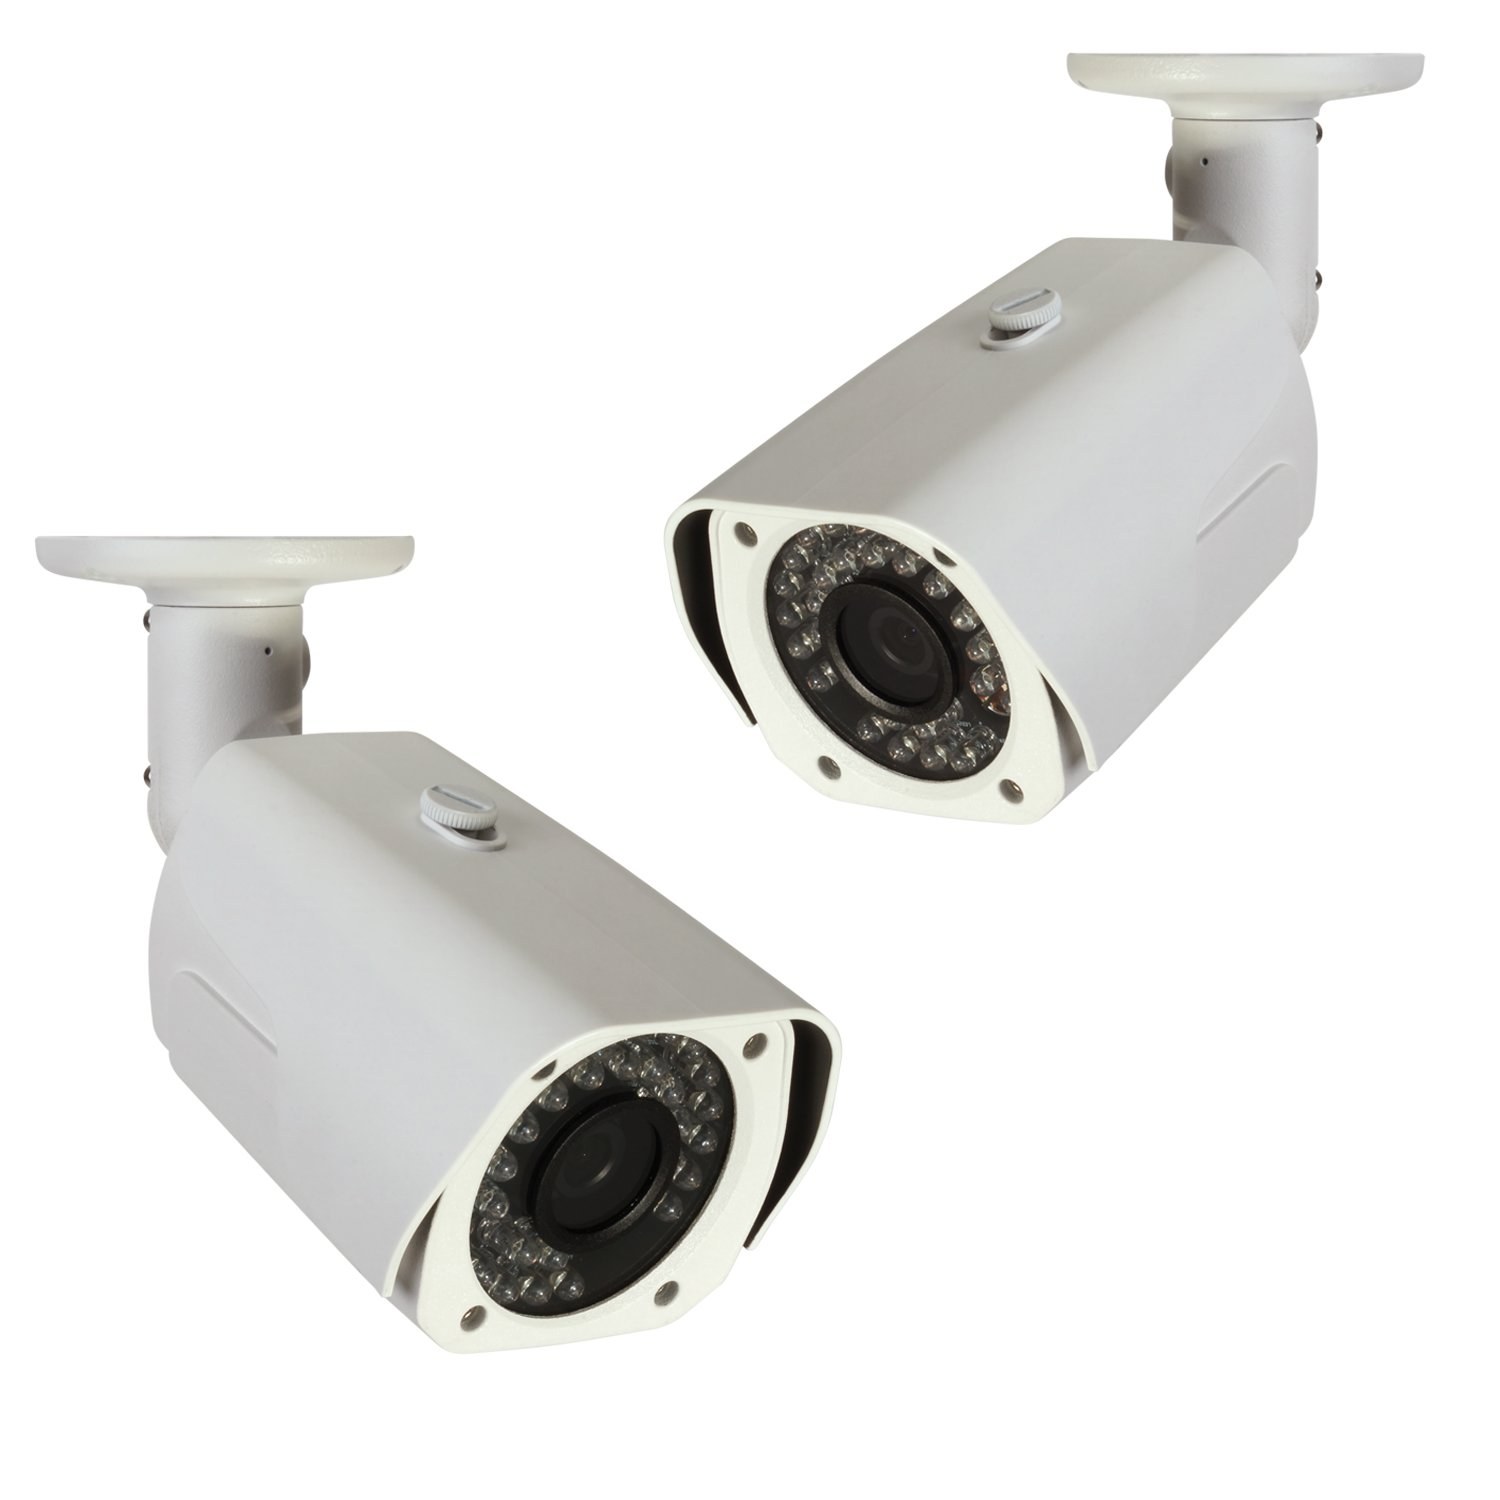 Q-See QCA7201B-4 720p High Definition Analog, Metal Housing, Bullet Security Camera 4-Pack White